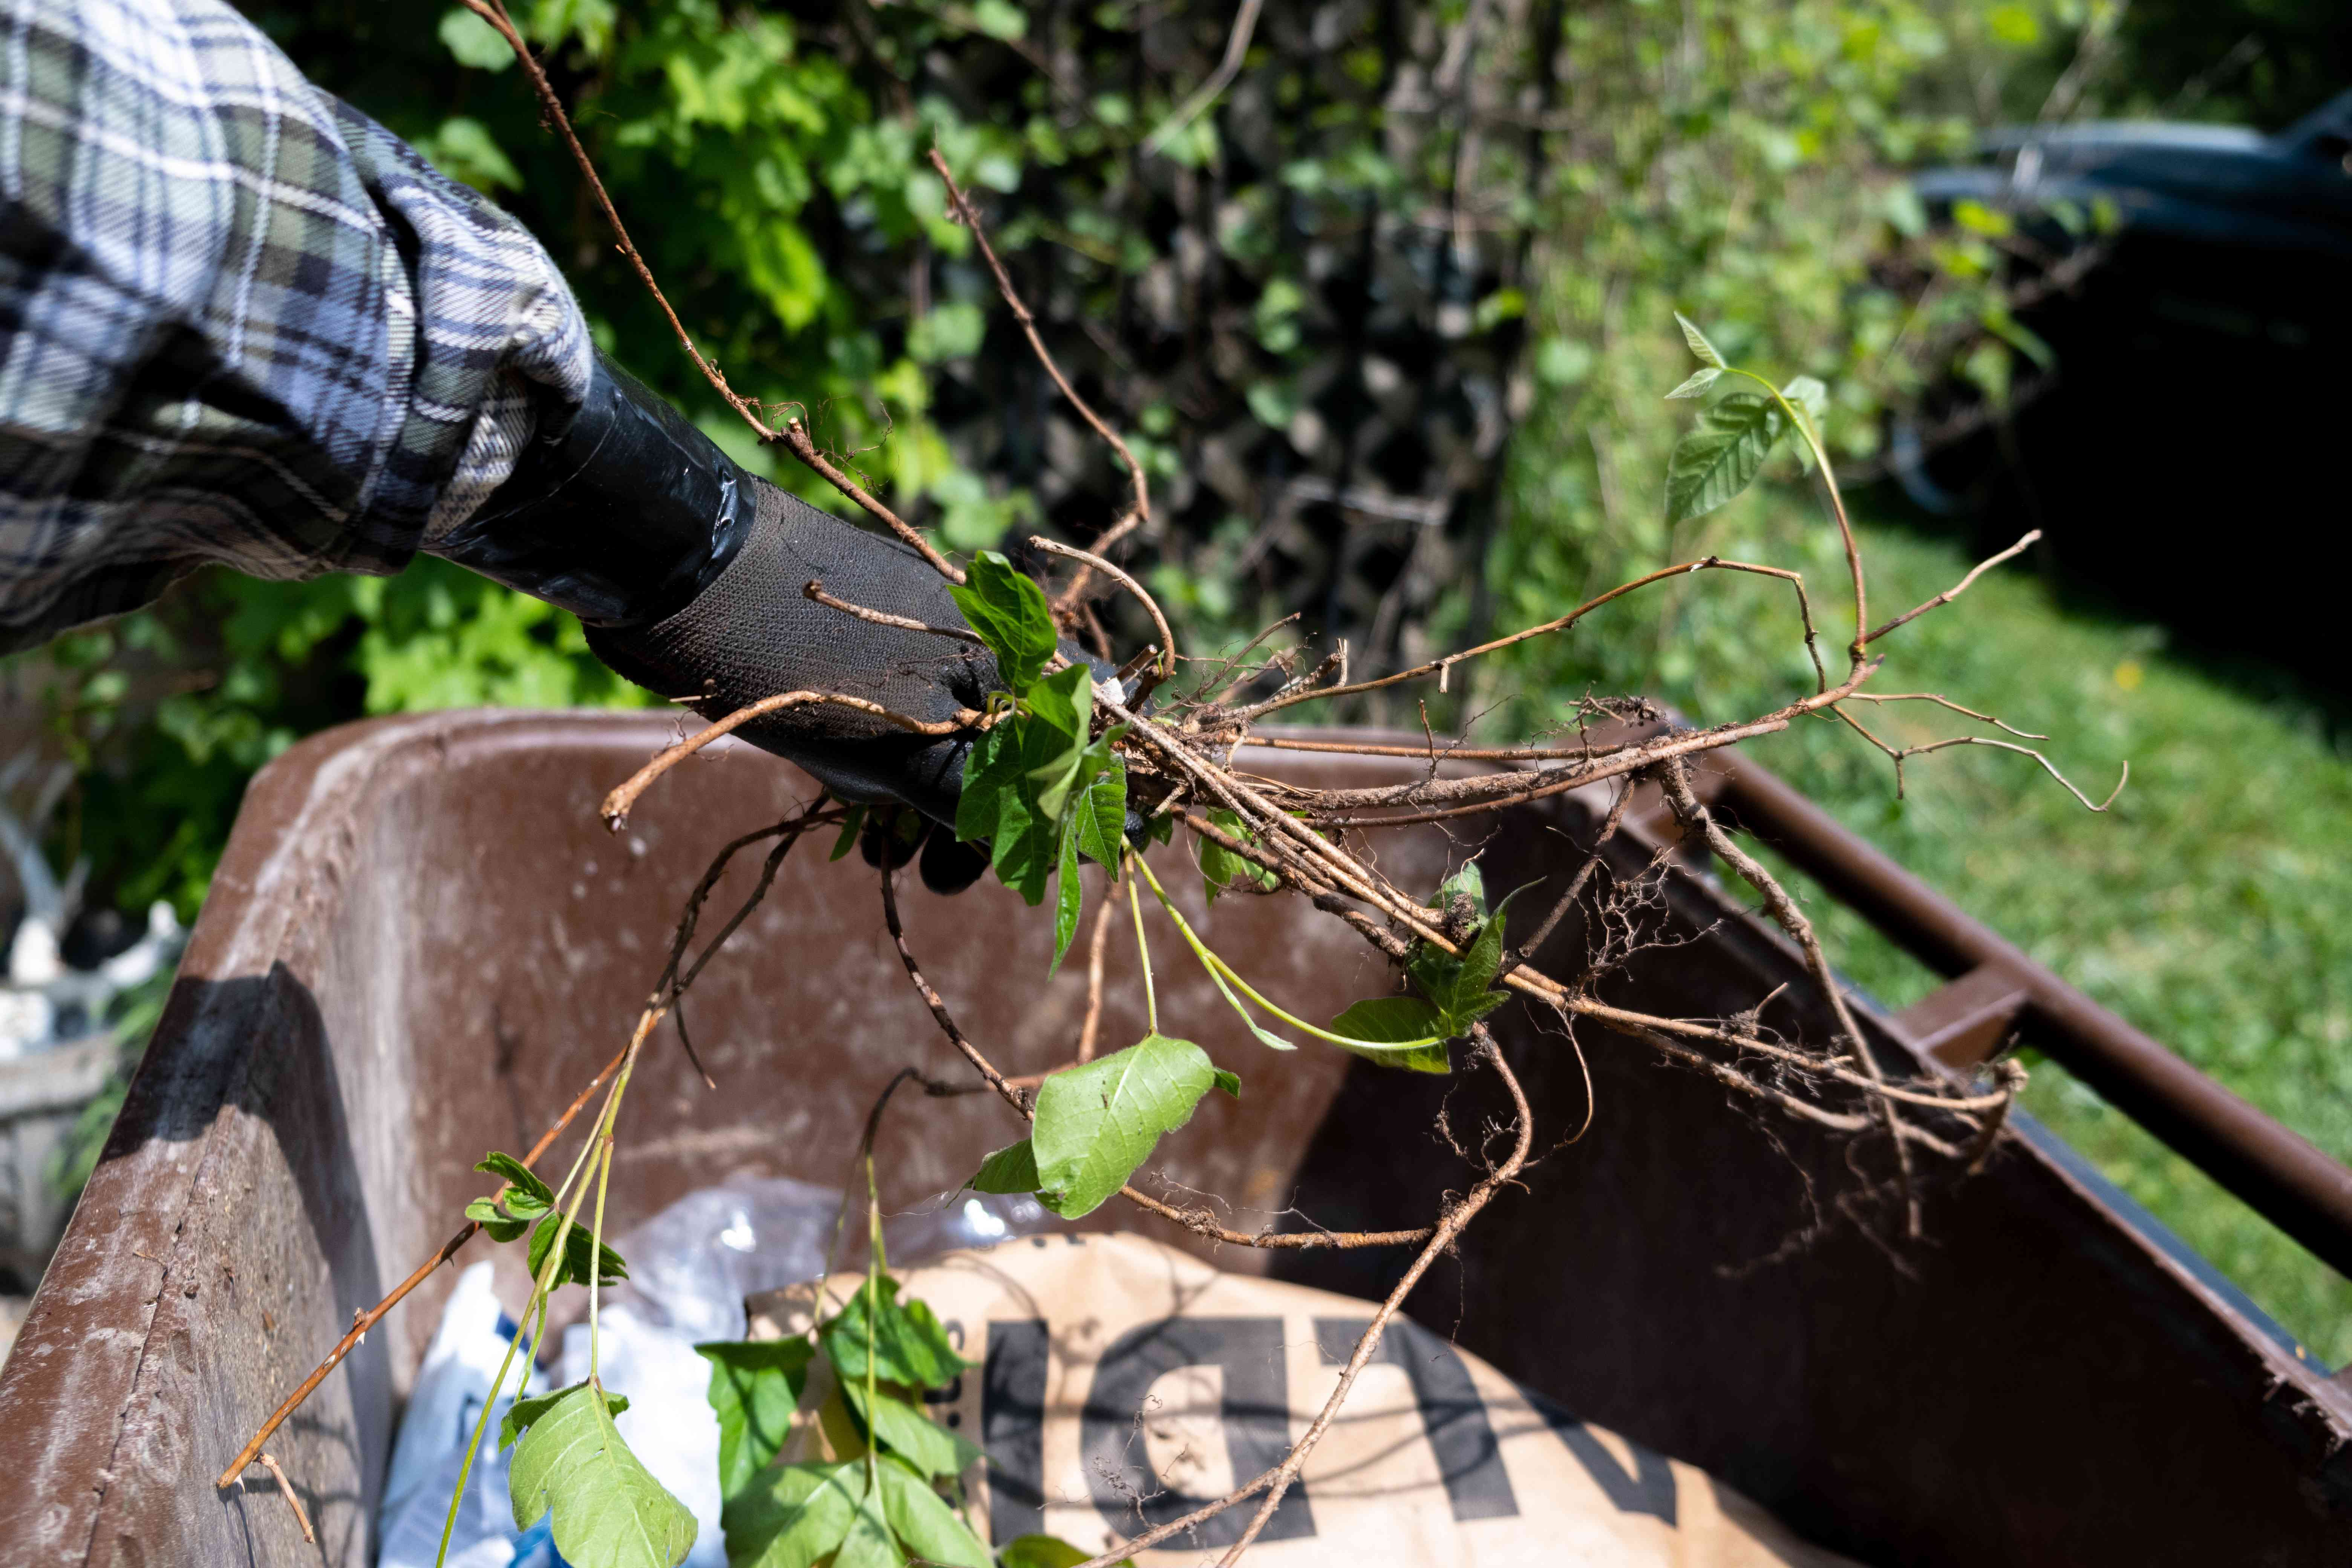 poison ivy pulled up by the roots is tossed into wheelbarrow for trash